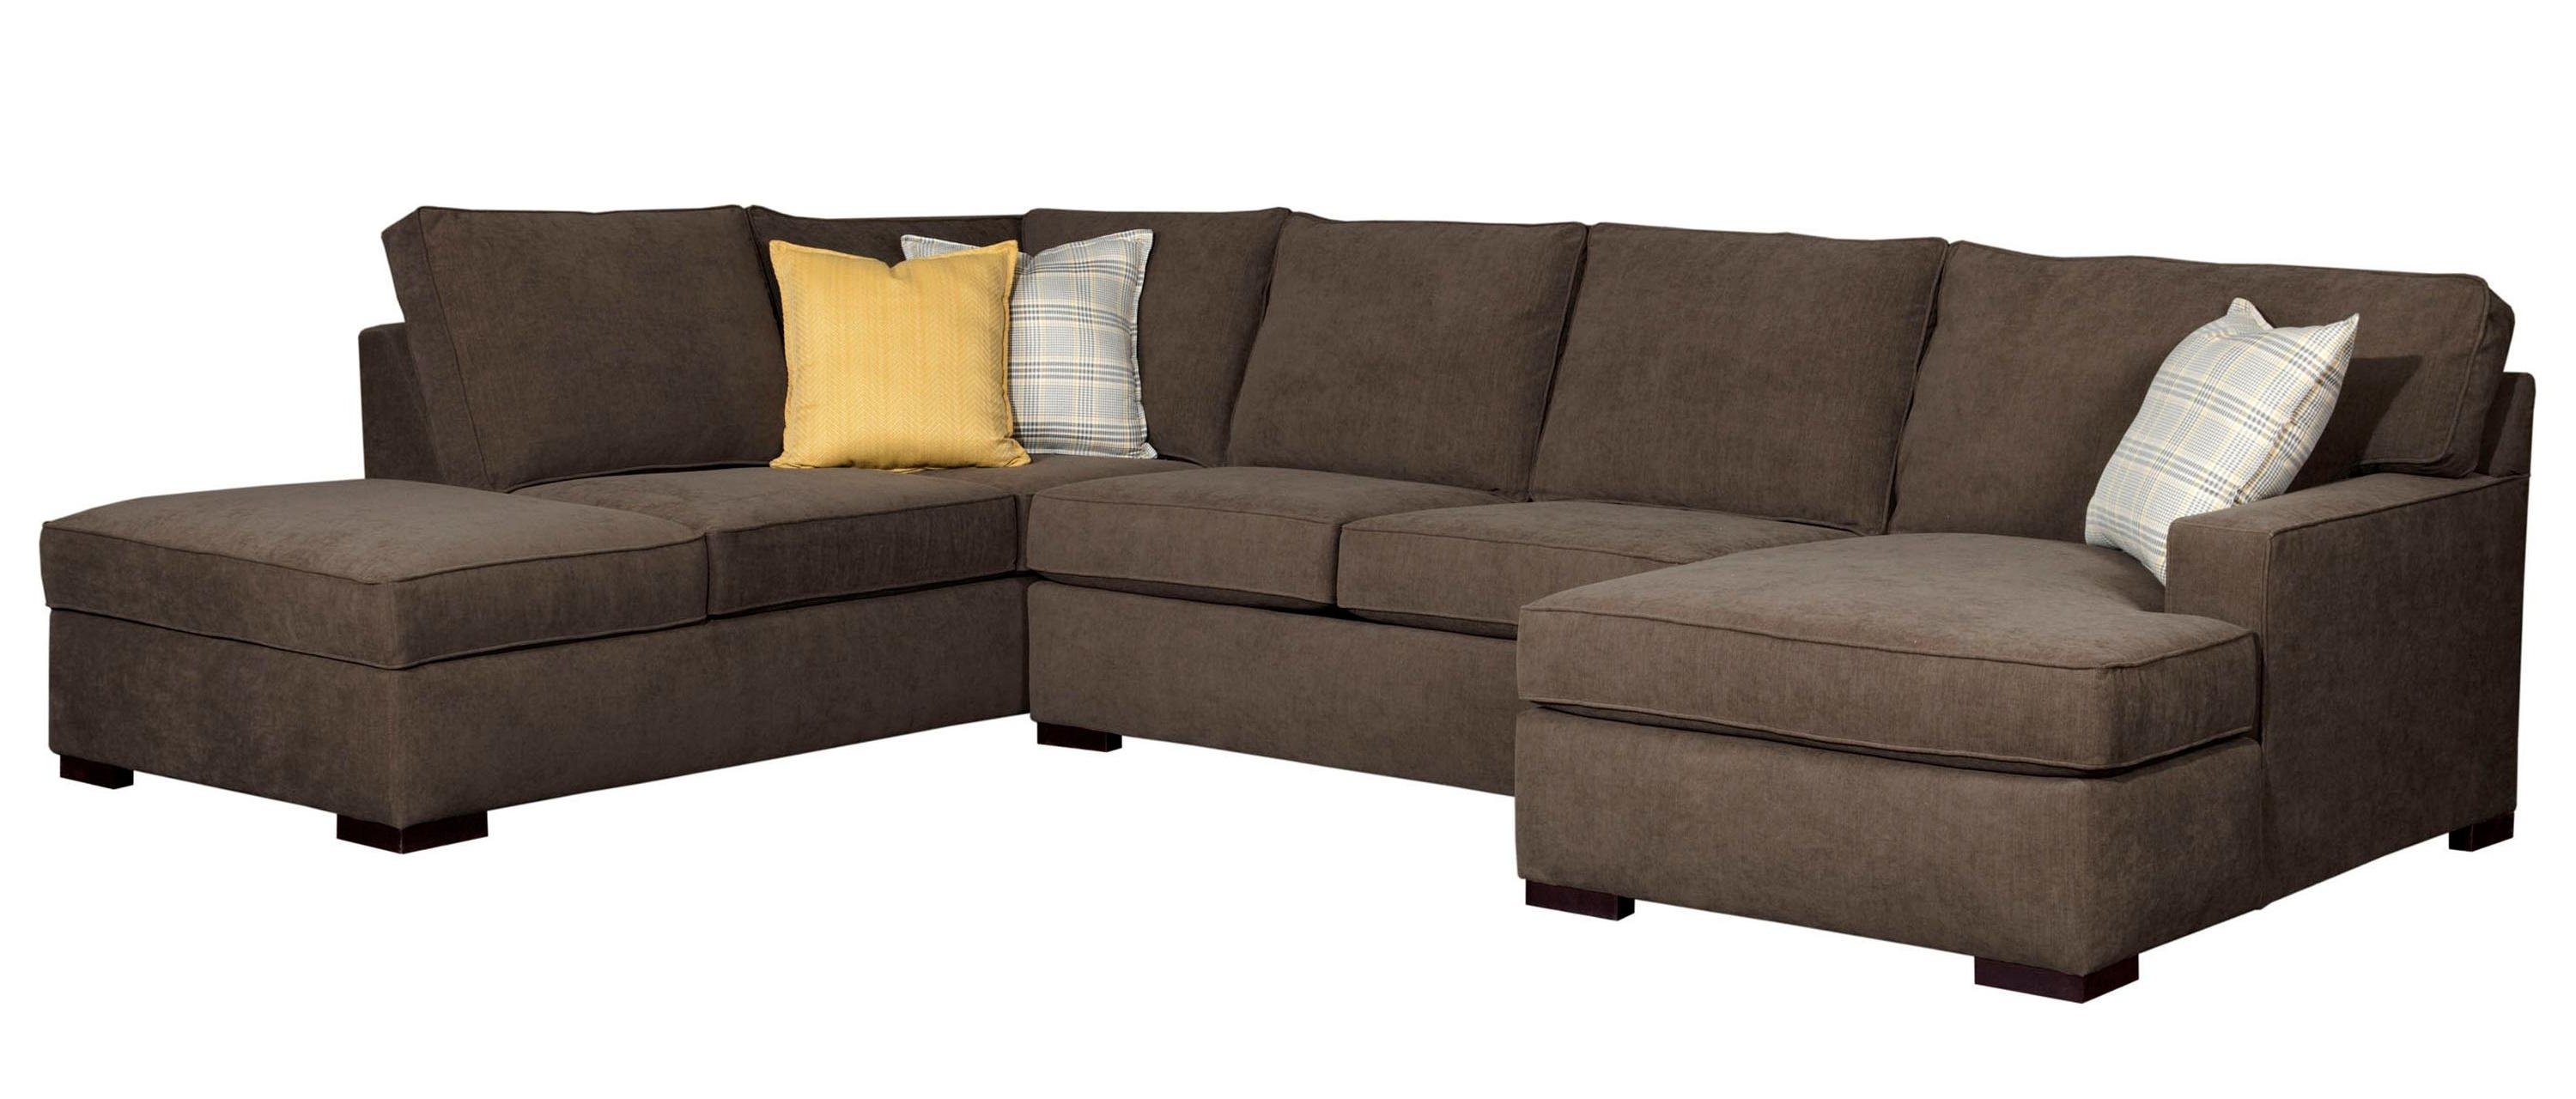 Sam Levitz Sectional Sofas With Well Known Broyhill Furniture Raphael Contemporary Sectional Sofa With Laf (View 16 of 20)